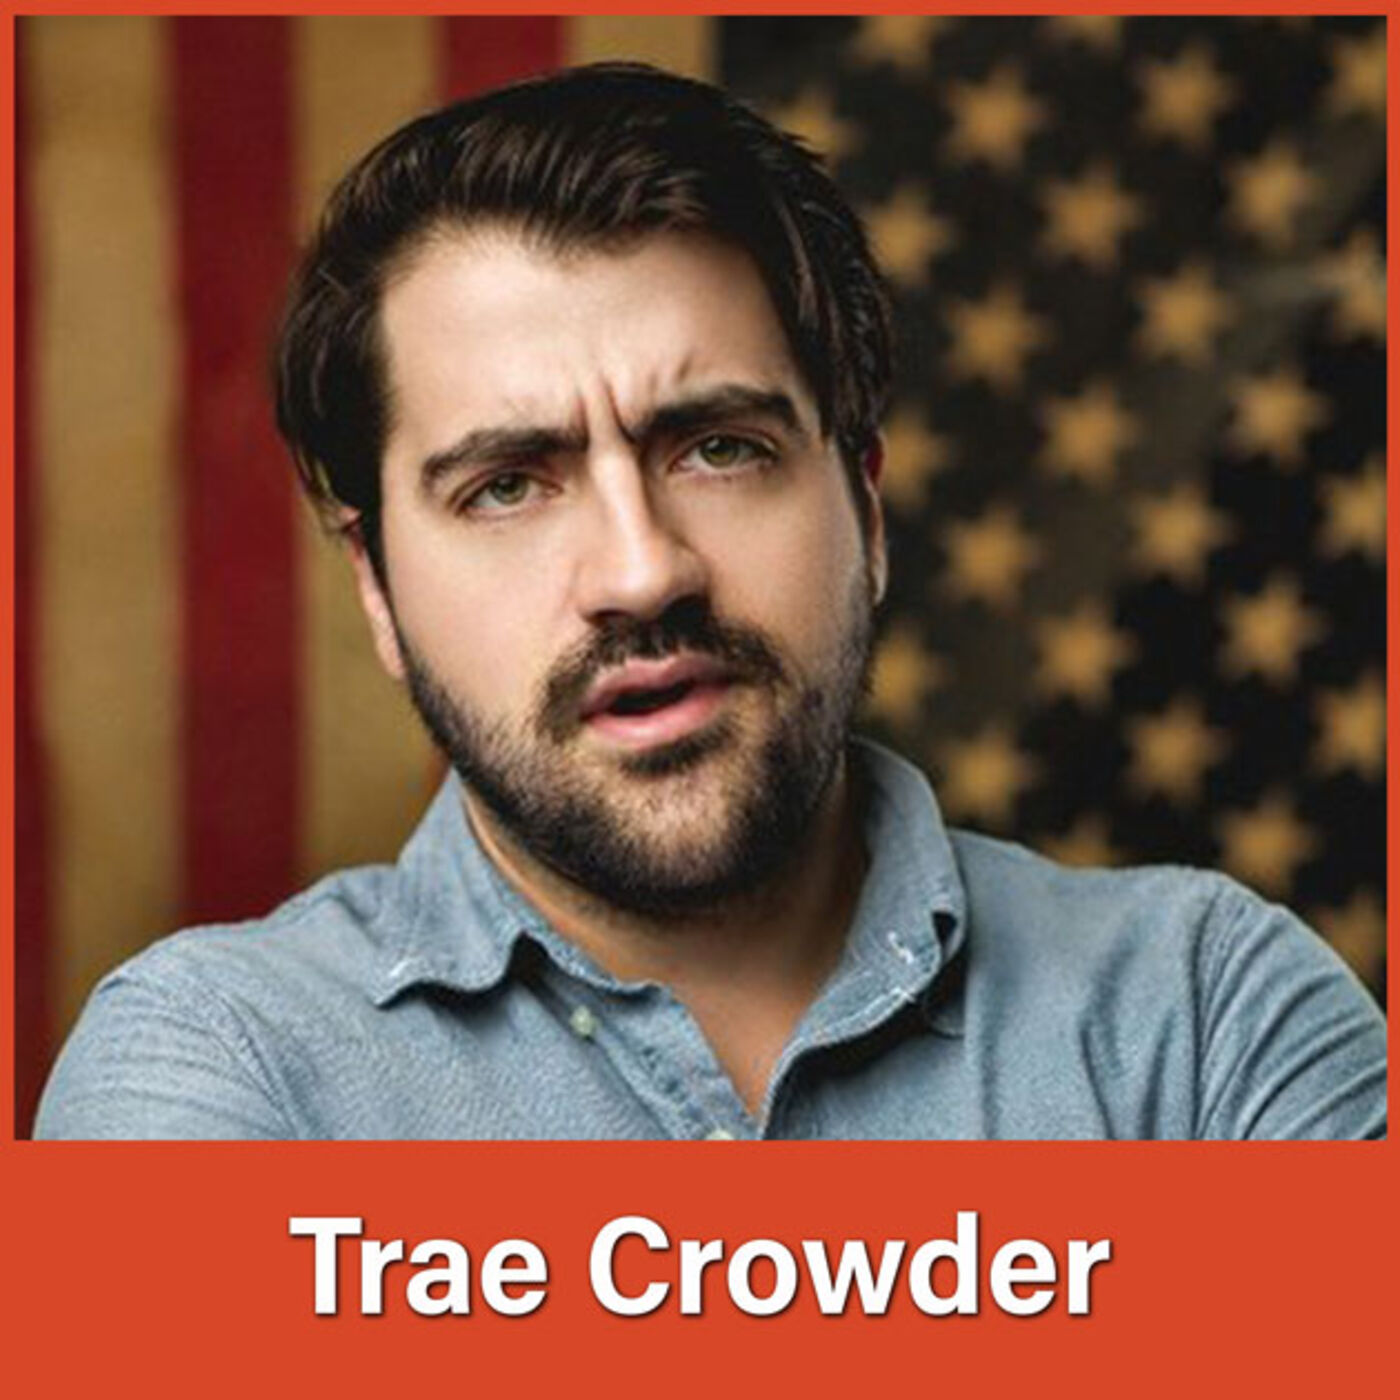 #35 Trae Crowder: The Inexorable March of Progress